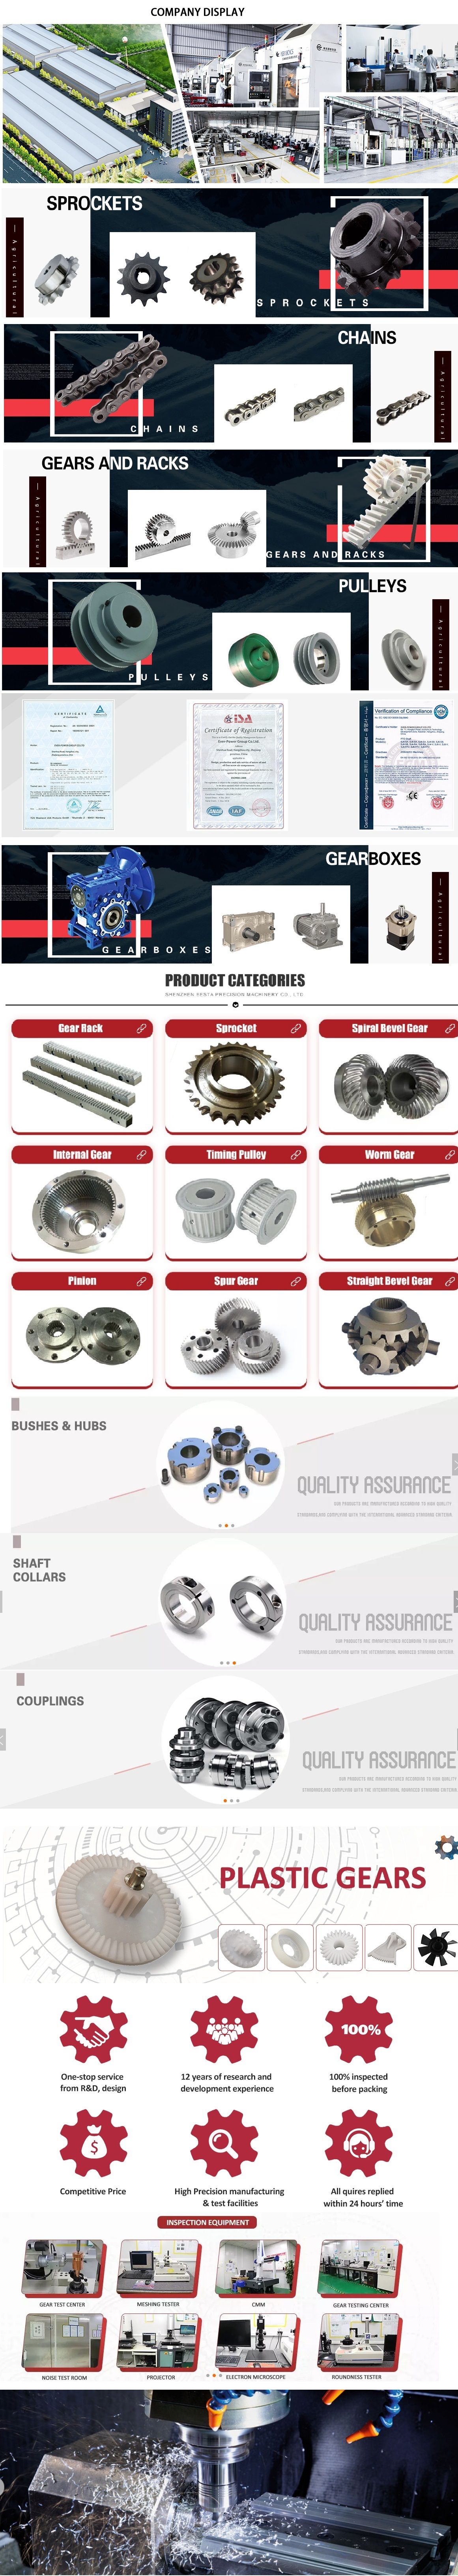 in Bologna Italy  sales   price   shop   near me   near me shop   factory   supplier Spare Tractor Parts Bevel Gear Pair 5142024 16 Axle Gear for Yto704 manufacturer   best   Cost   Custom   Cheap   wholesaler